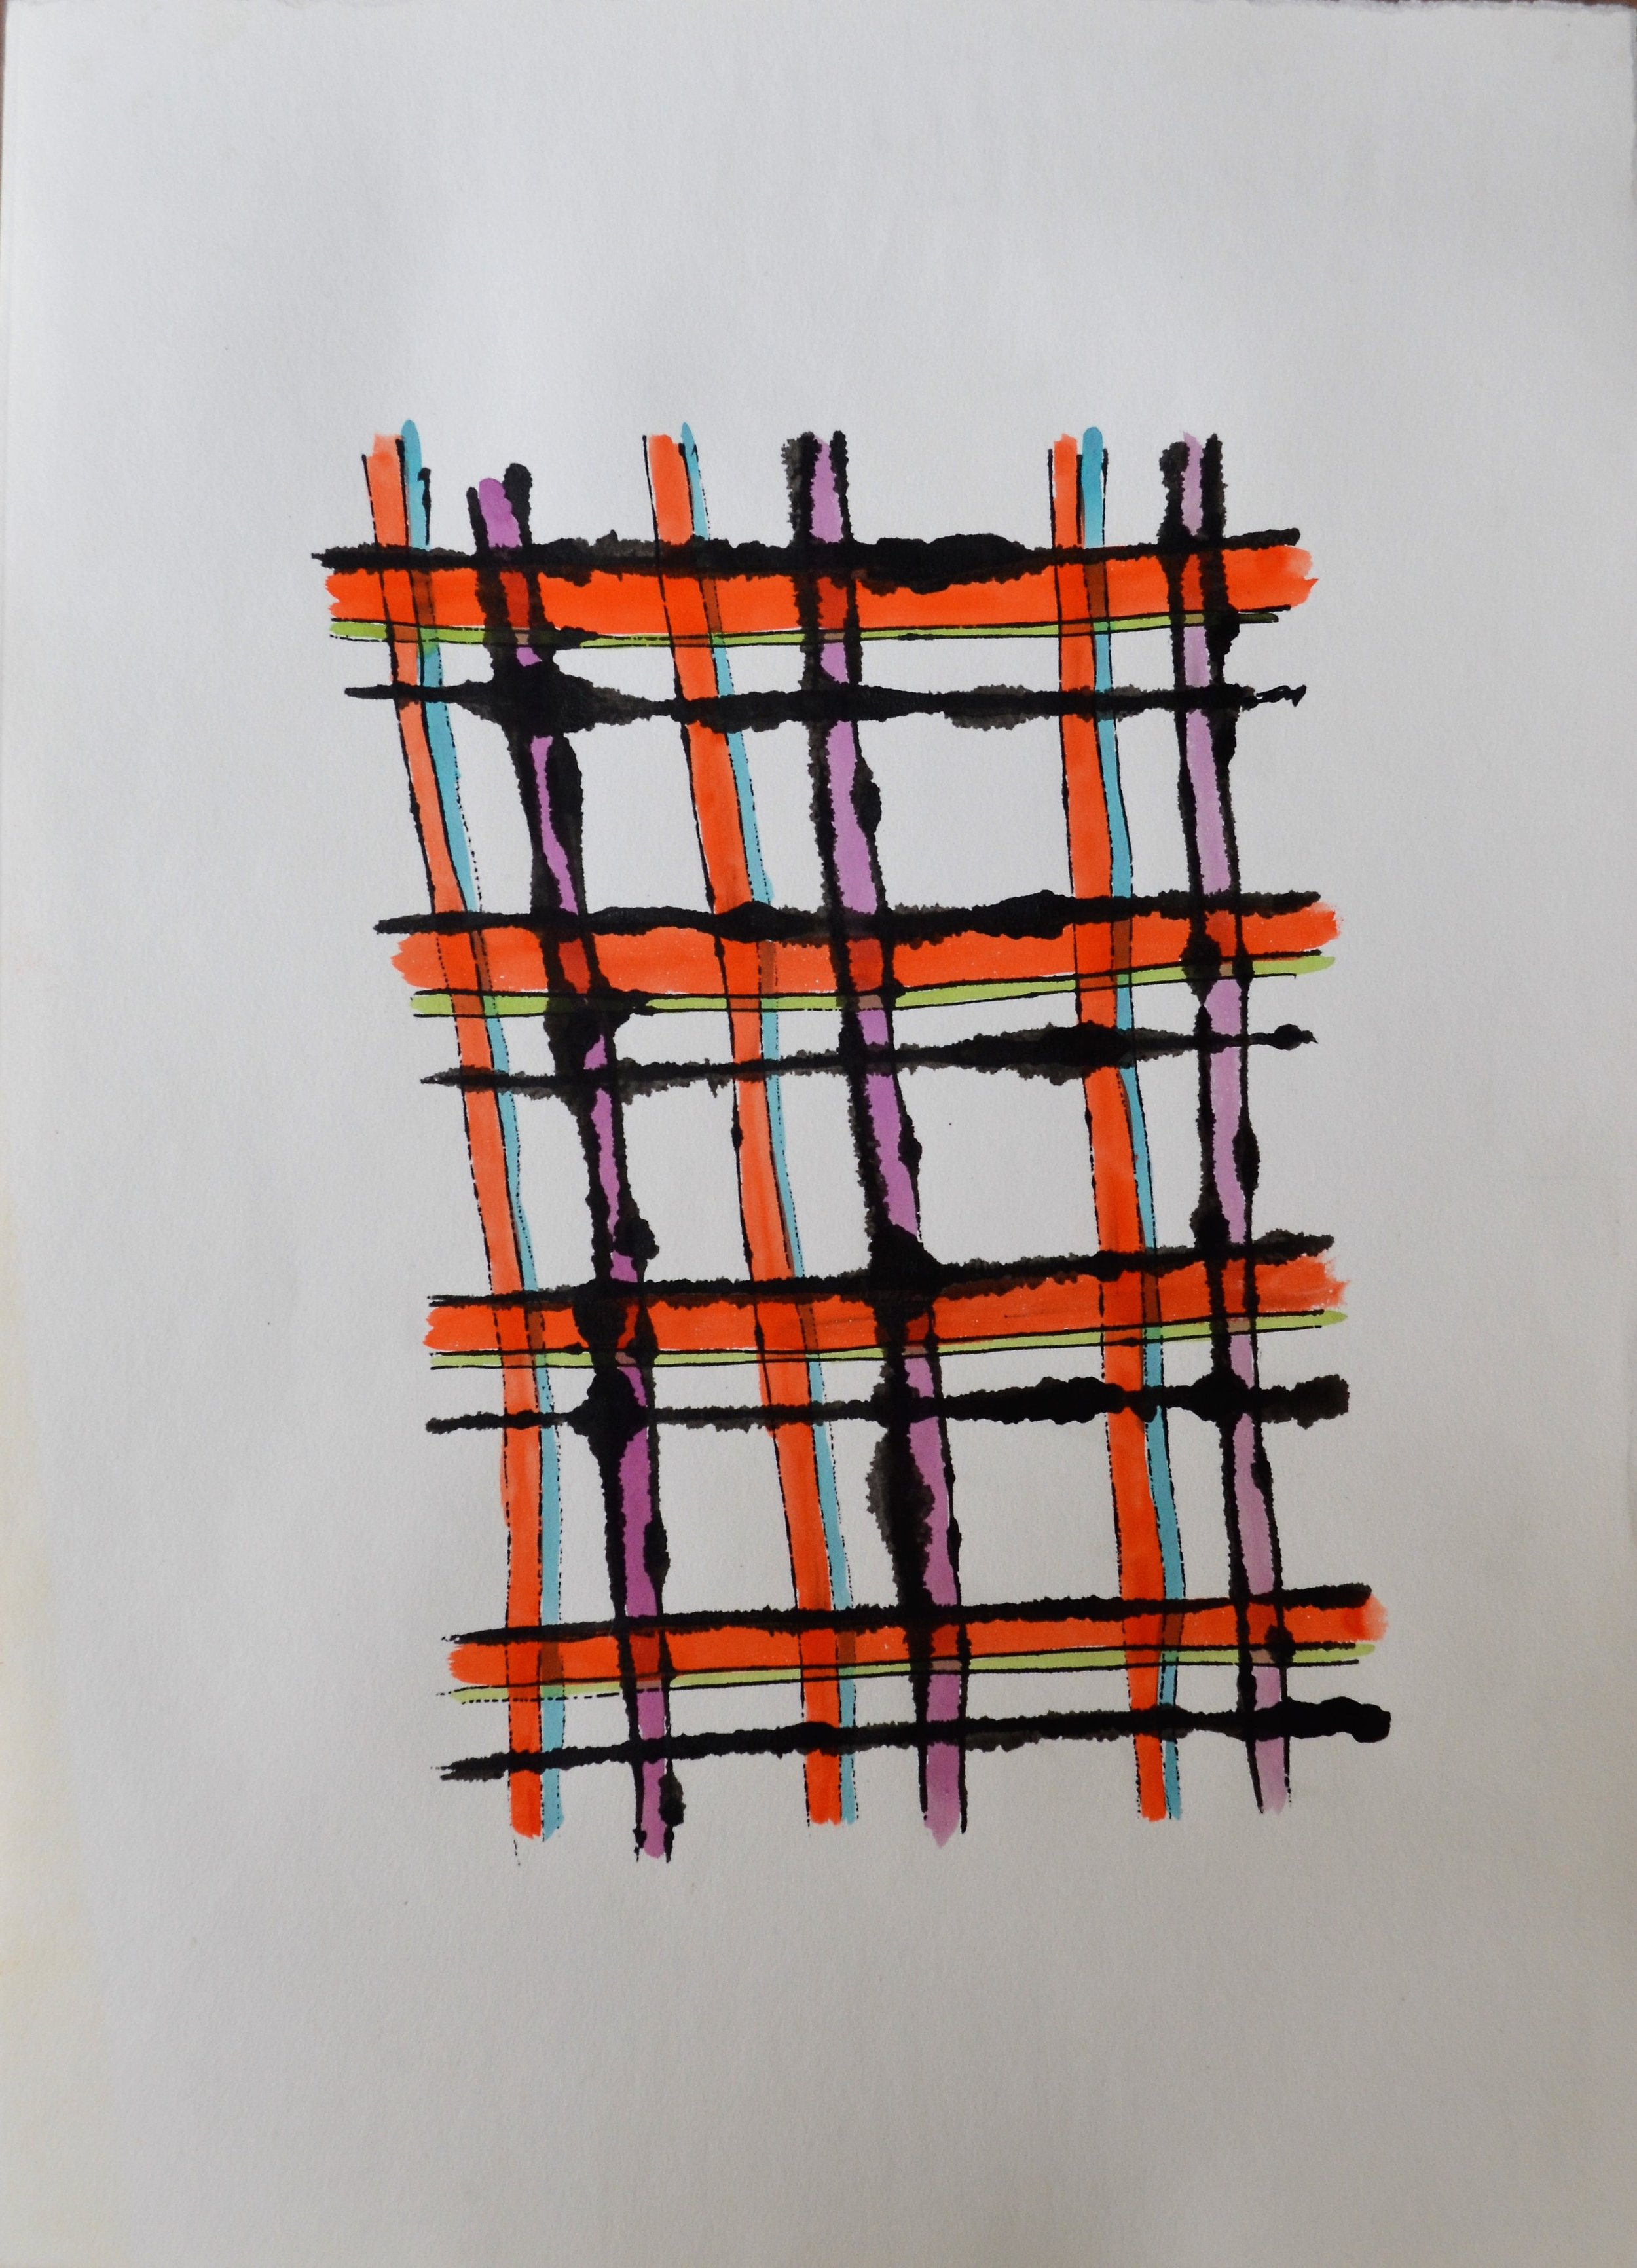 ink and tempera work on paper of orange, black, light blue and purple patterns by Andy Warhol